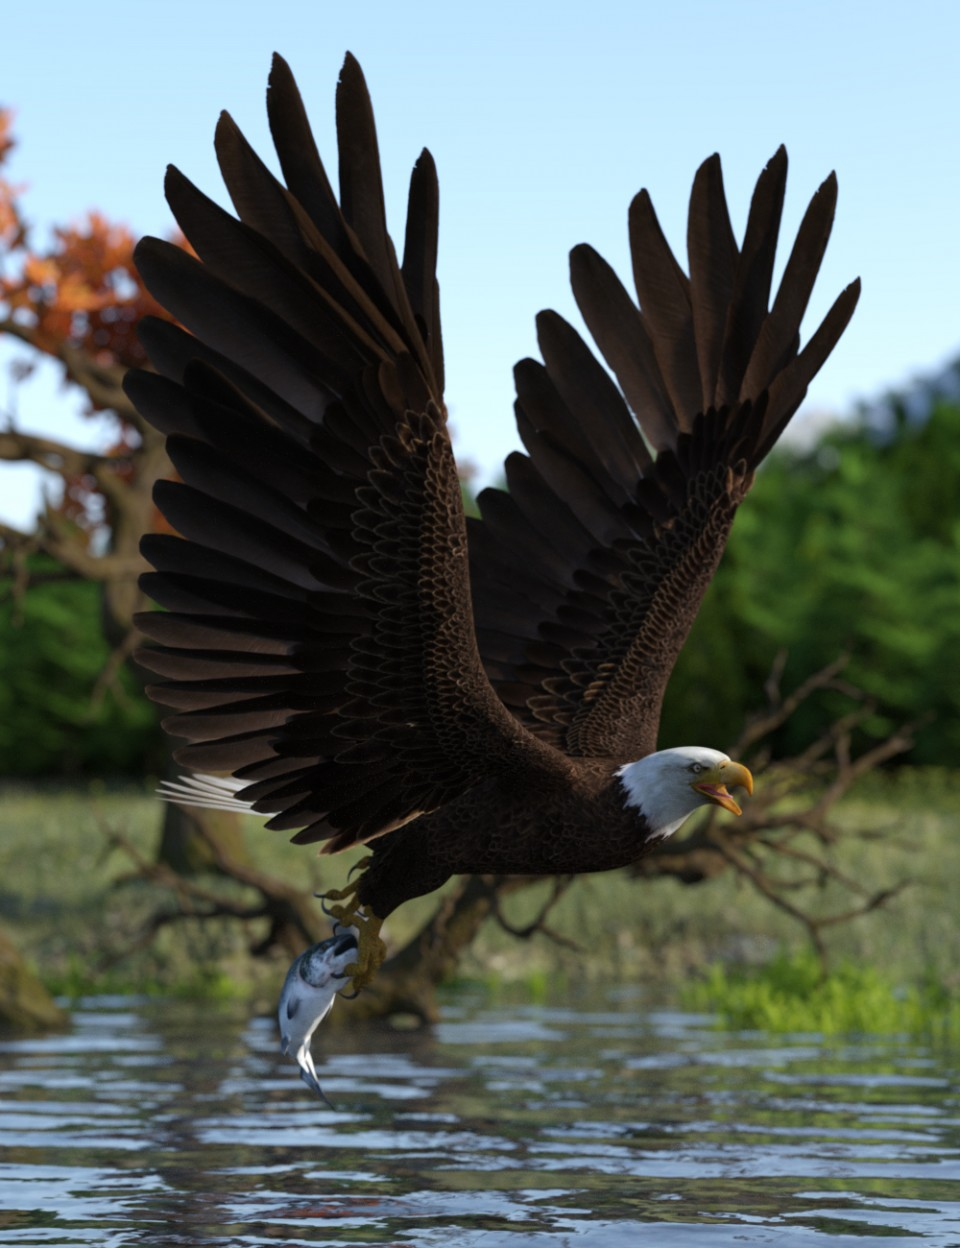 Deepsea's Eagle Poses and Fish_DAZ3D下载站